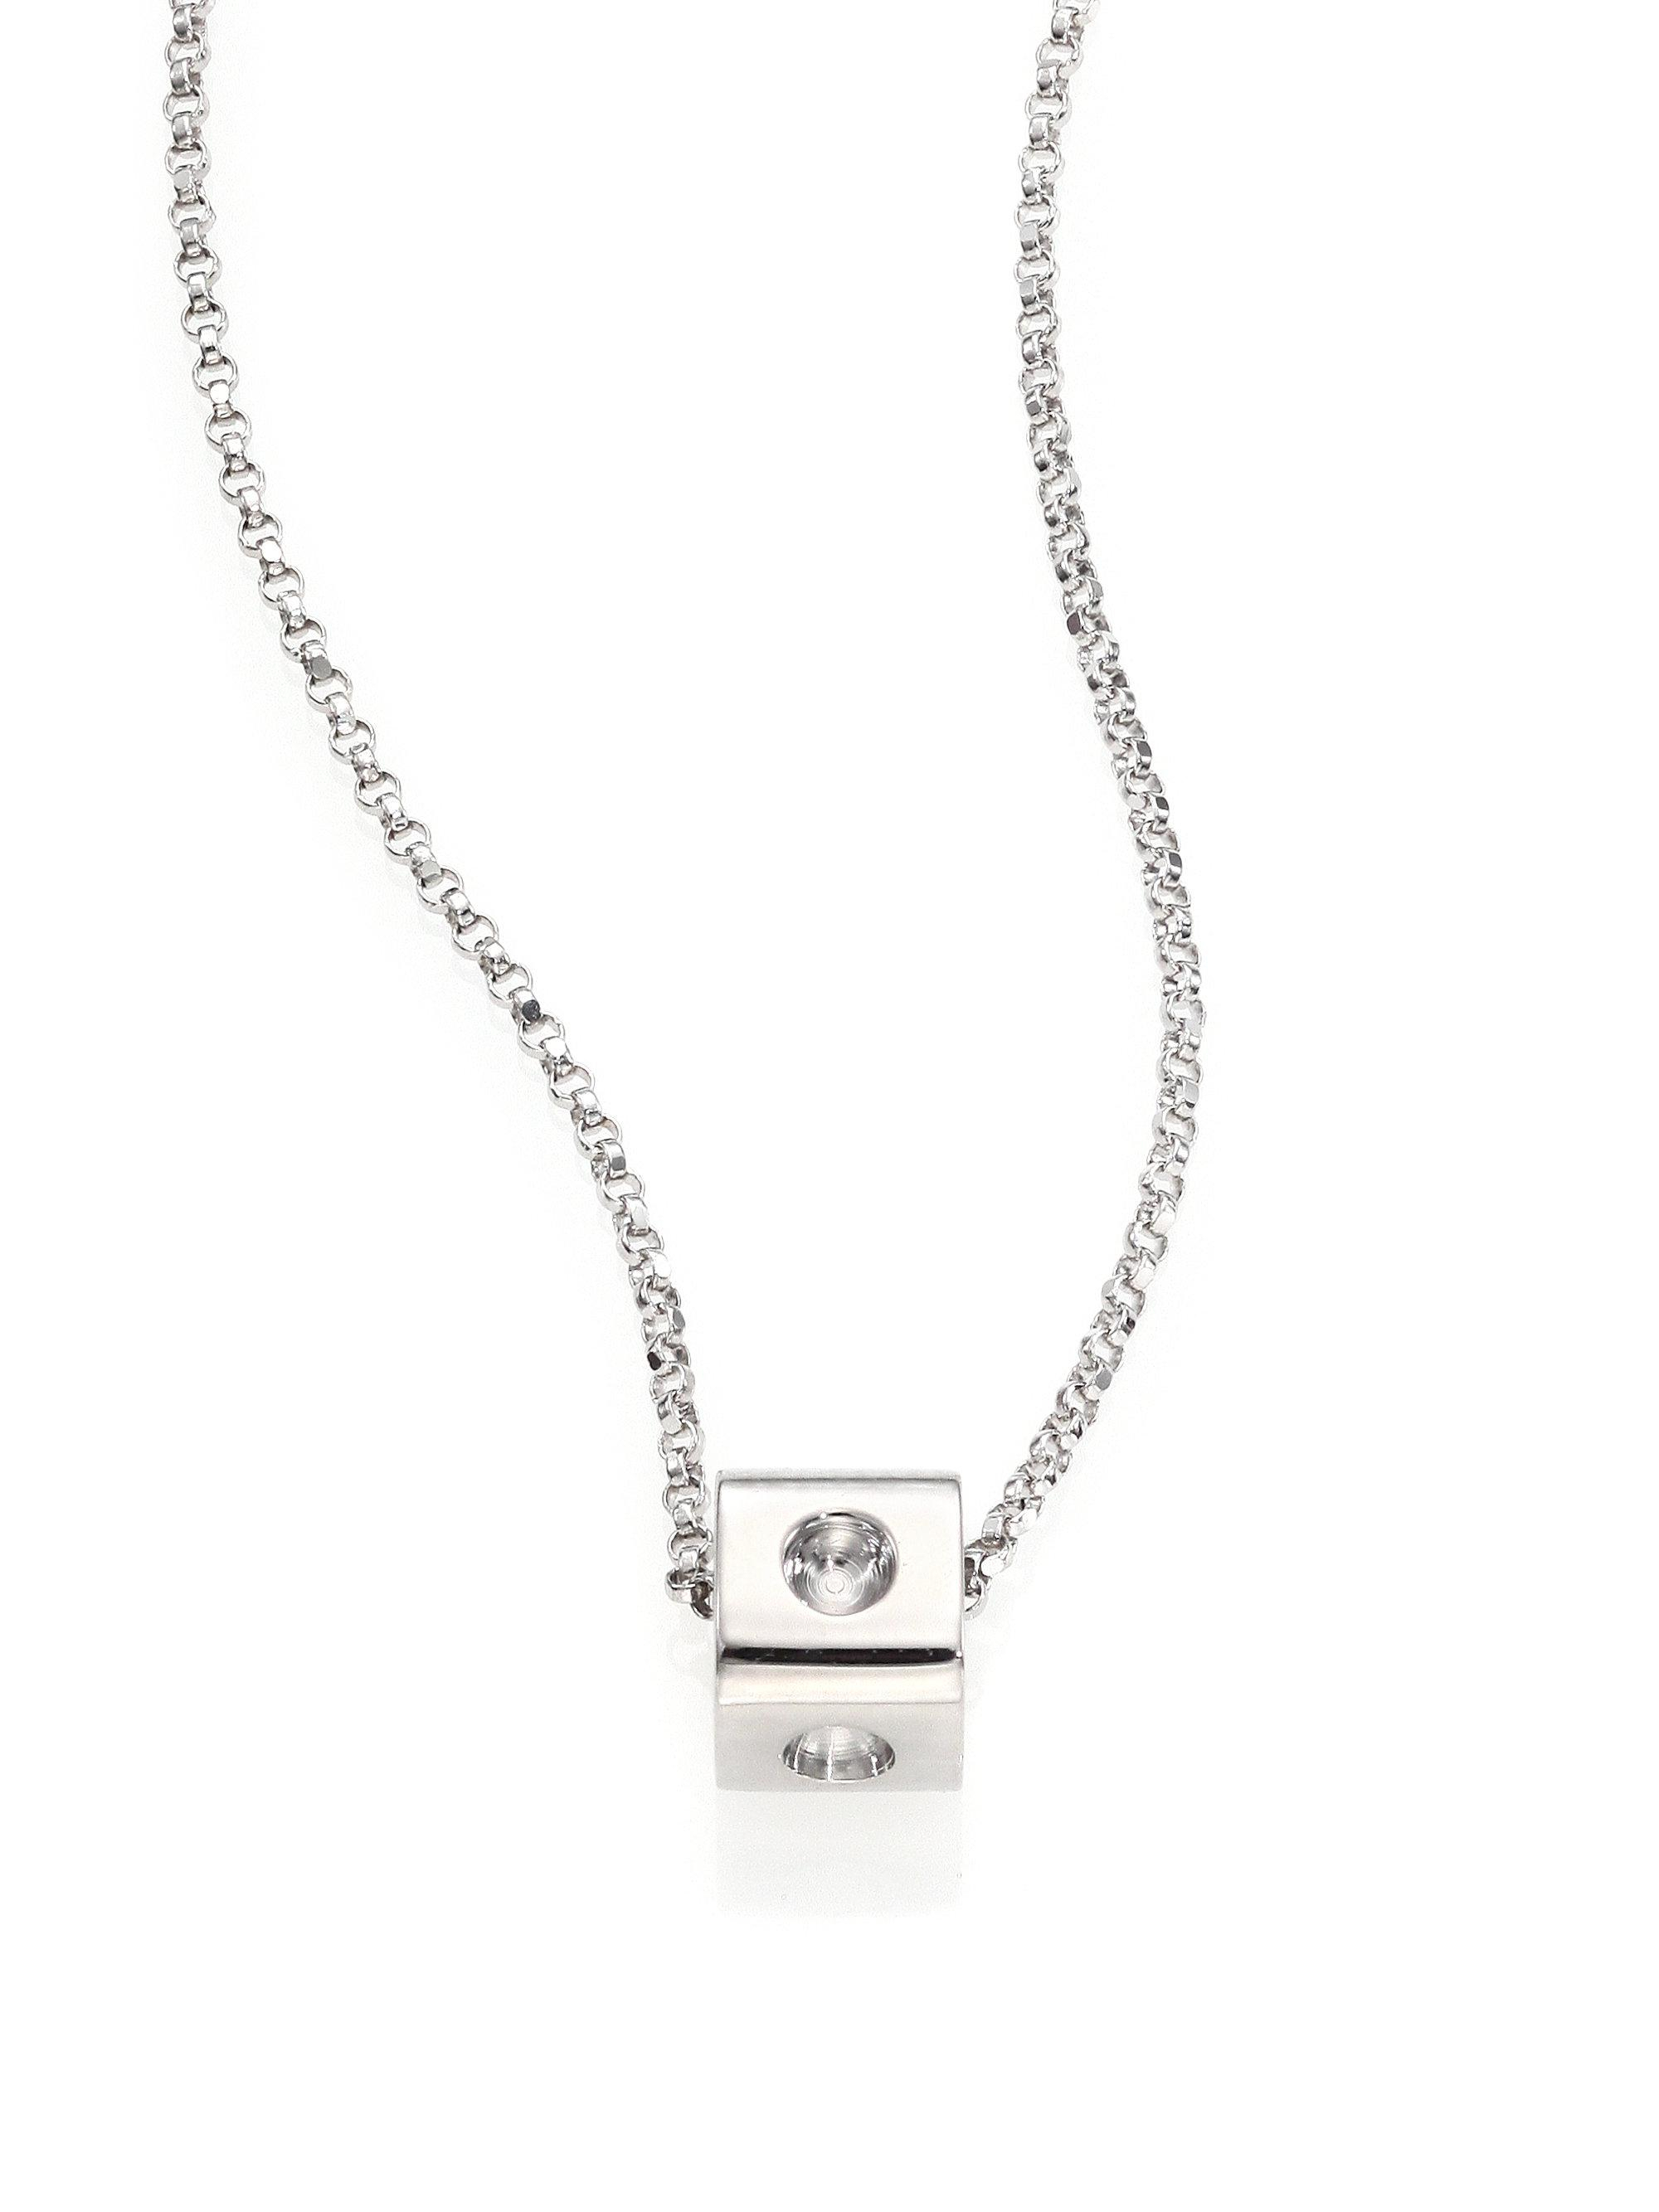 Roberto Coin Metallic Pois Moi 18k White Gold Mini Cube Pendant Necklace Inside Most Current Sparkling Ice Cube Circle Pendant Necklaces (View 2 of 25)